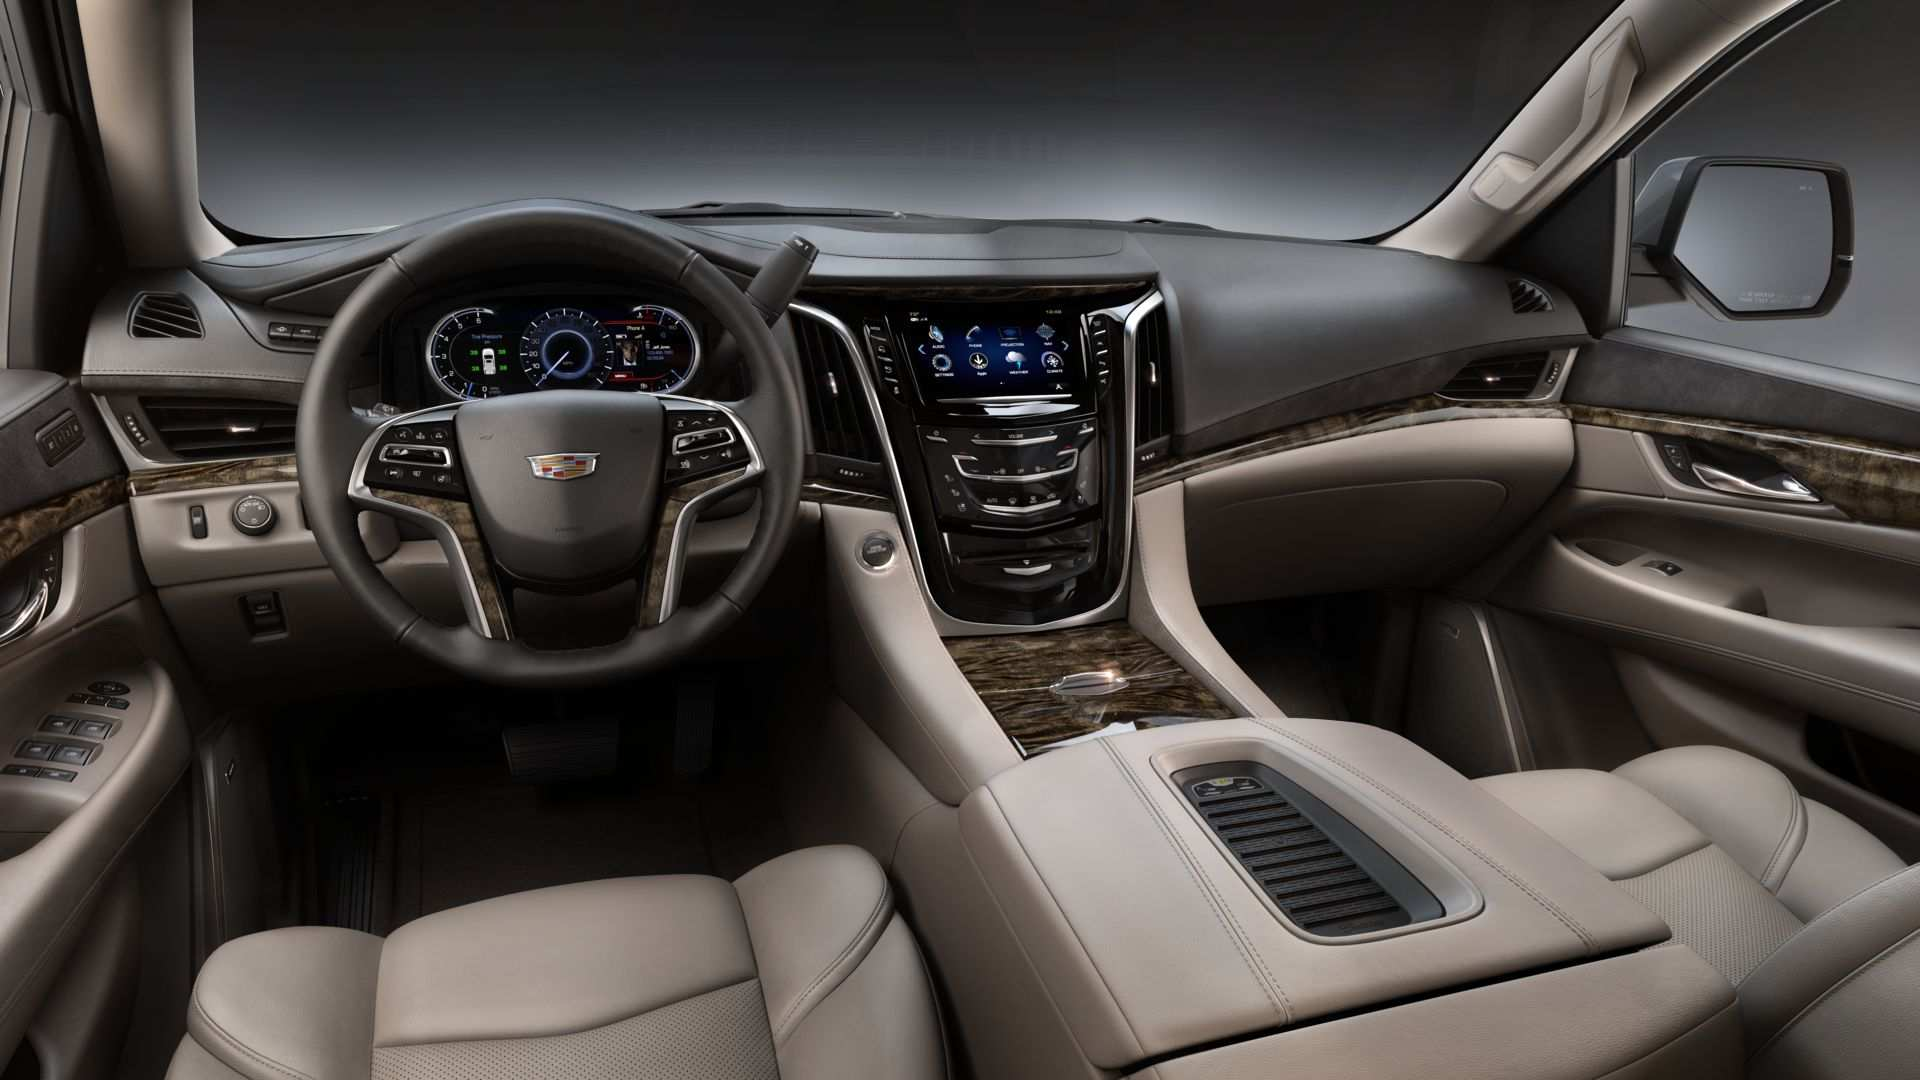 37 All New 2019 Cadillac Interior Spy Shoot for 2019 Cadillac Interior